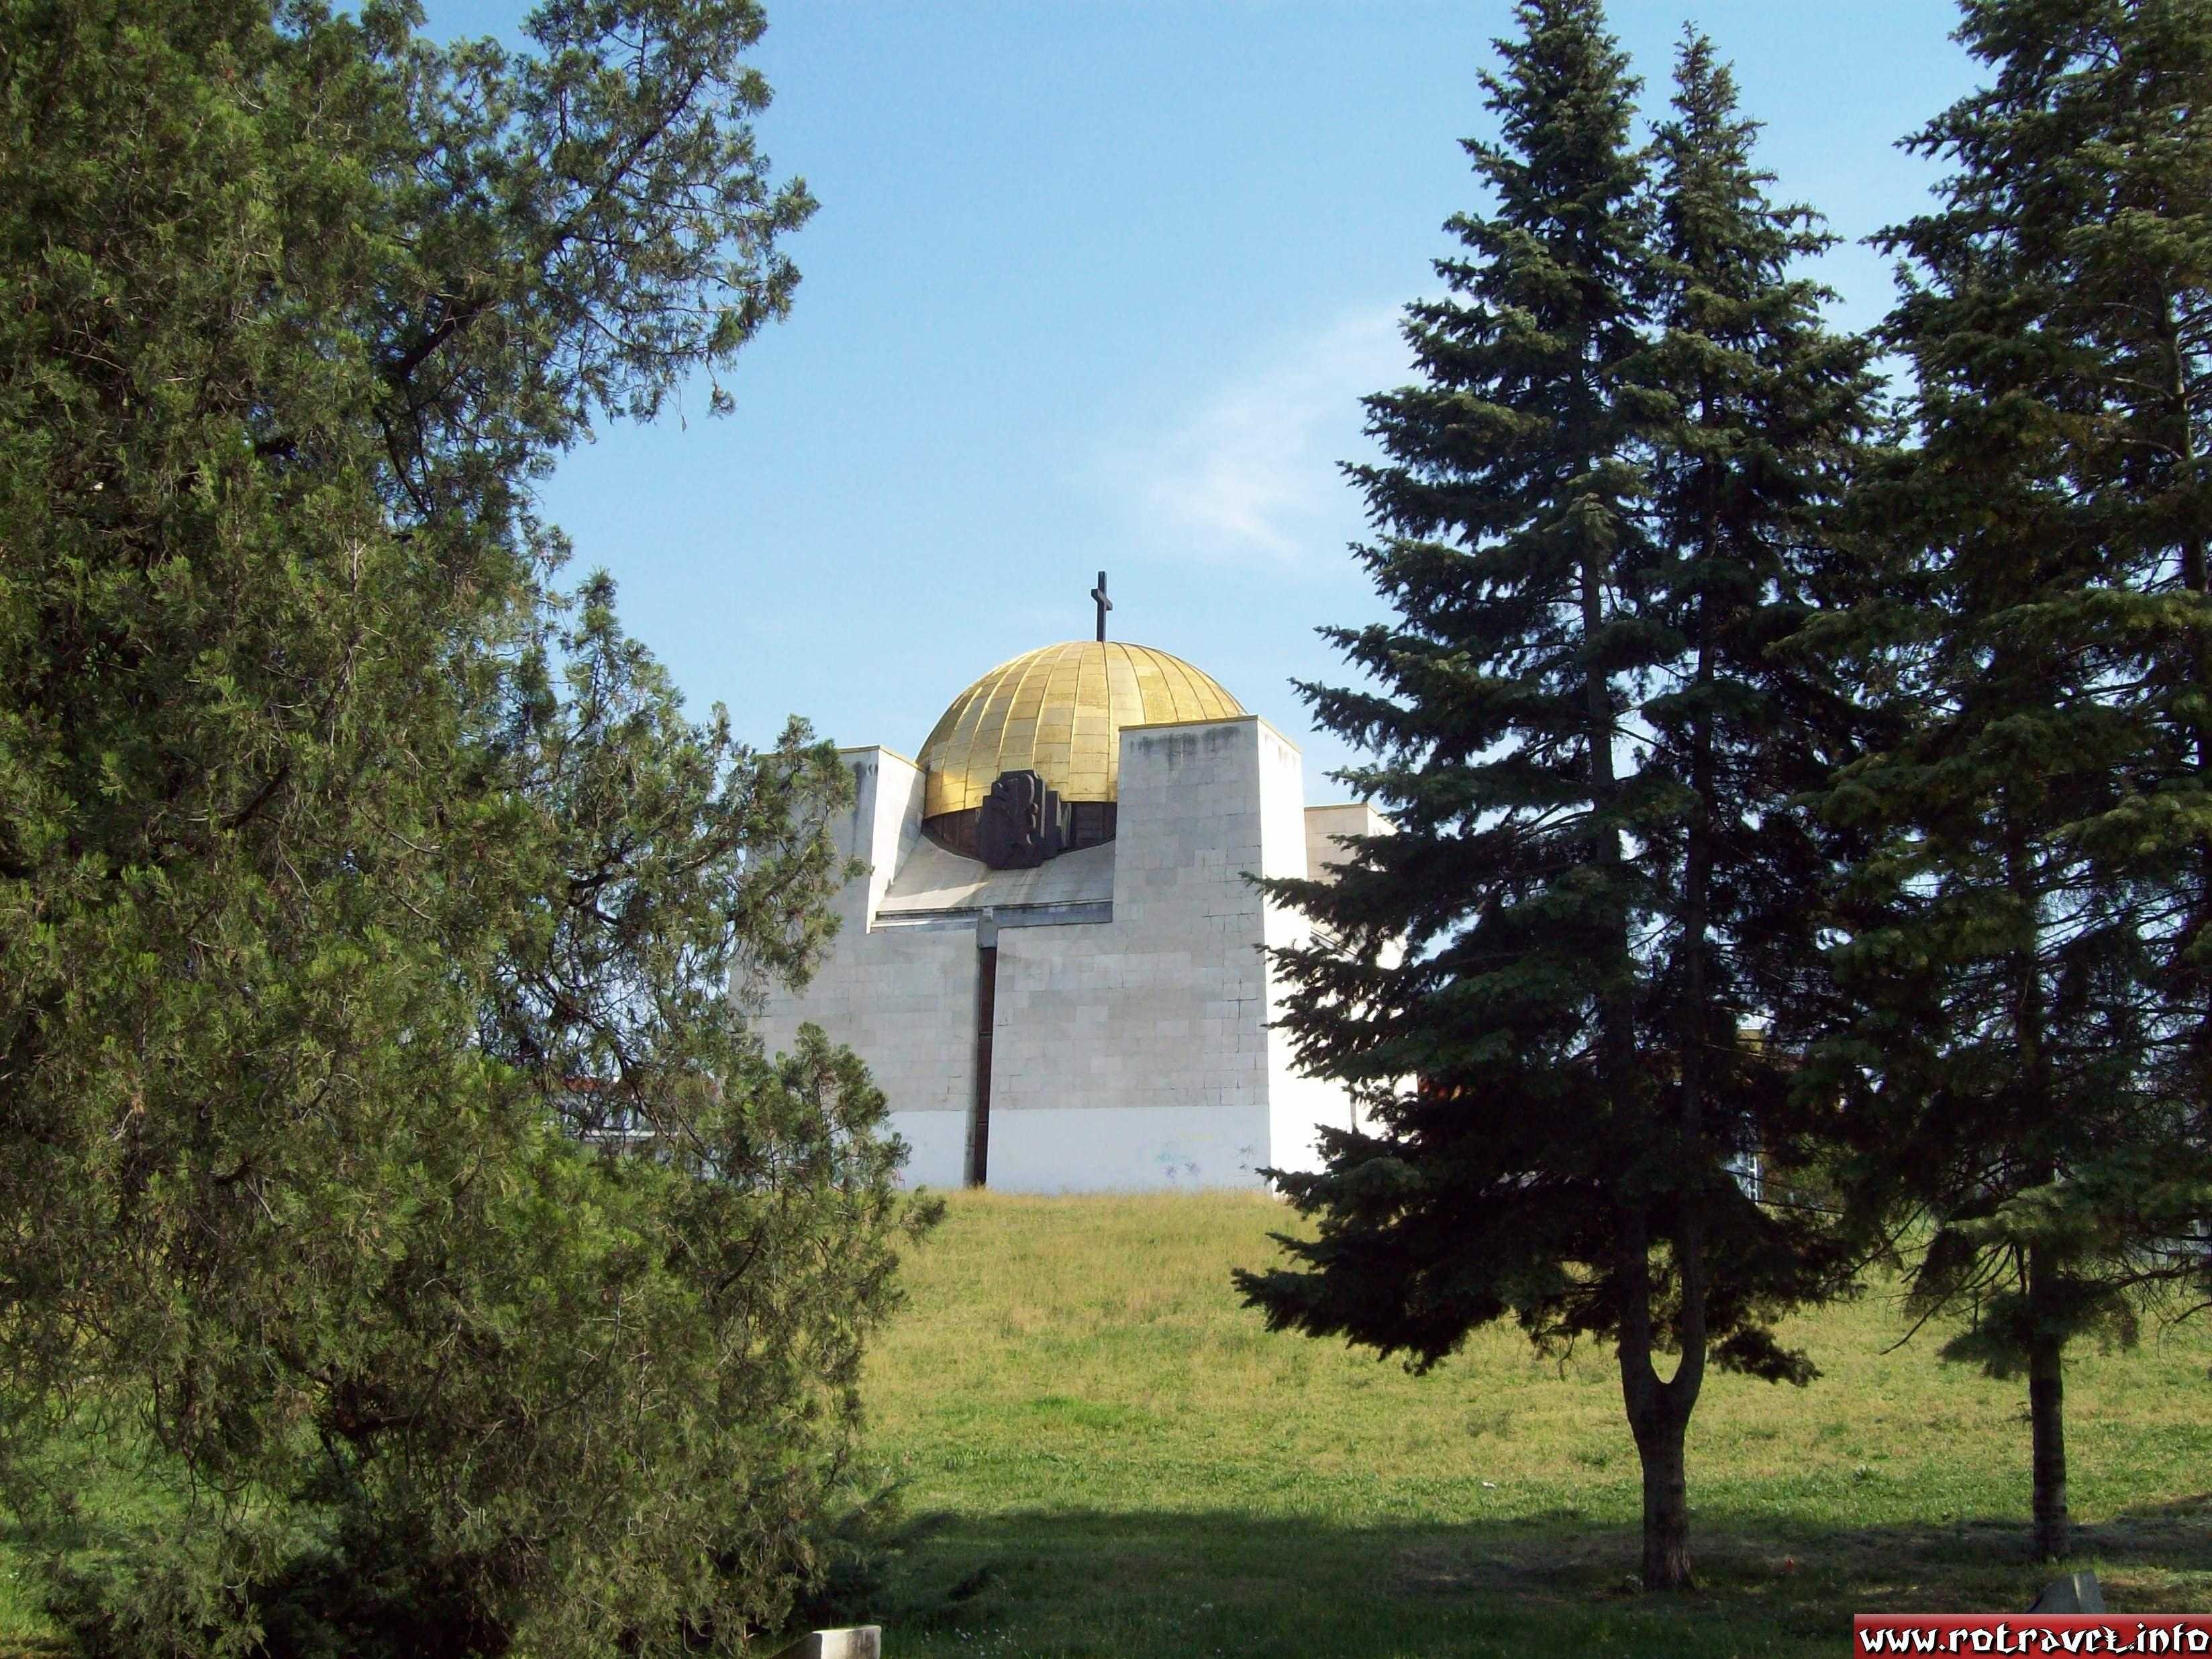 The Pantheon of National Revival Heroes (Bulgarian: Пантеон на възрожденците) is a Bulgarian national monument and an ossuary, located in the city of Rousse.